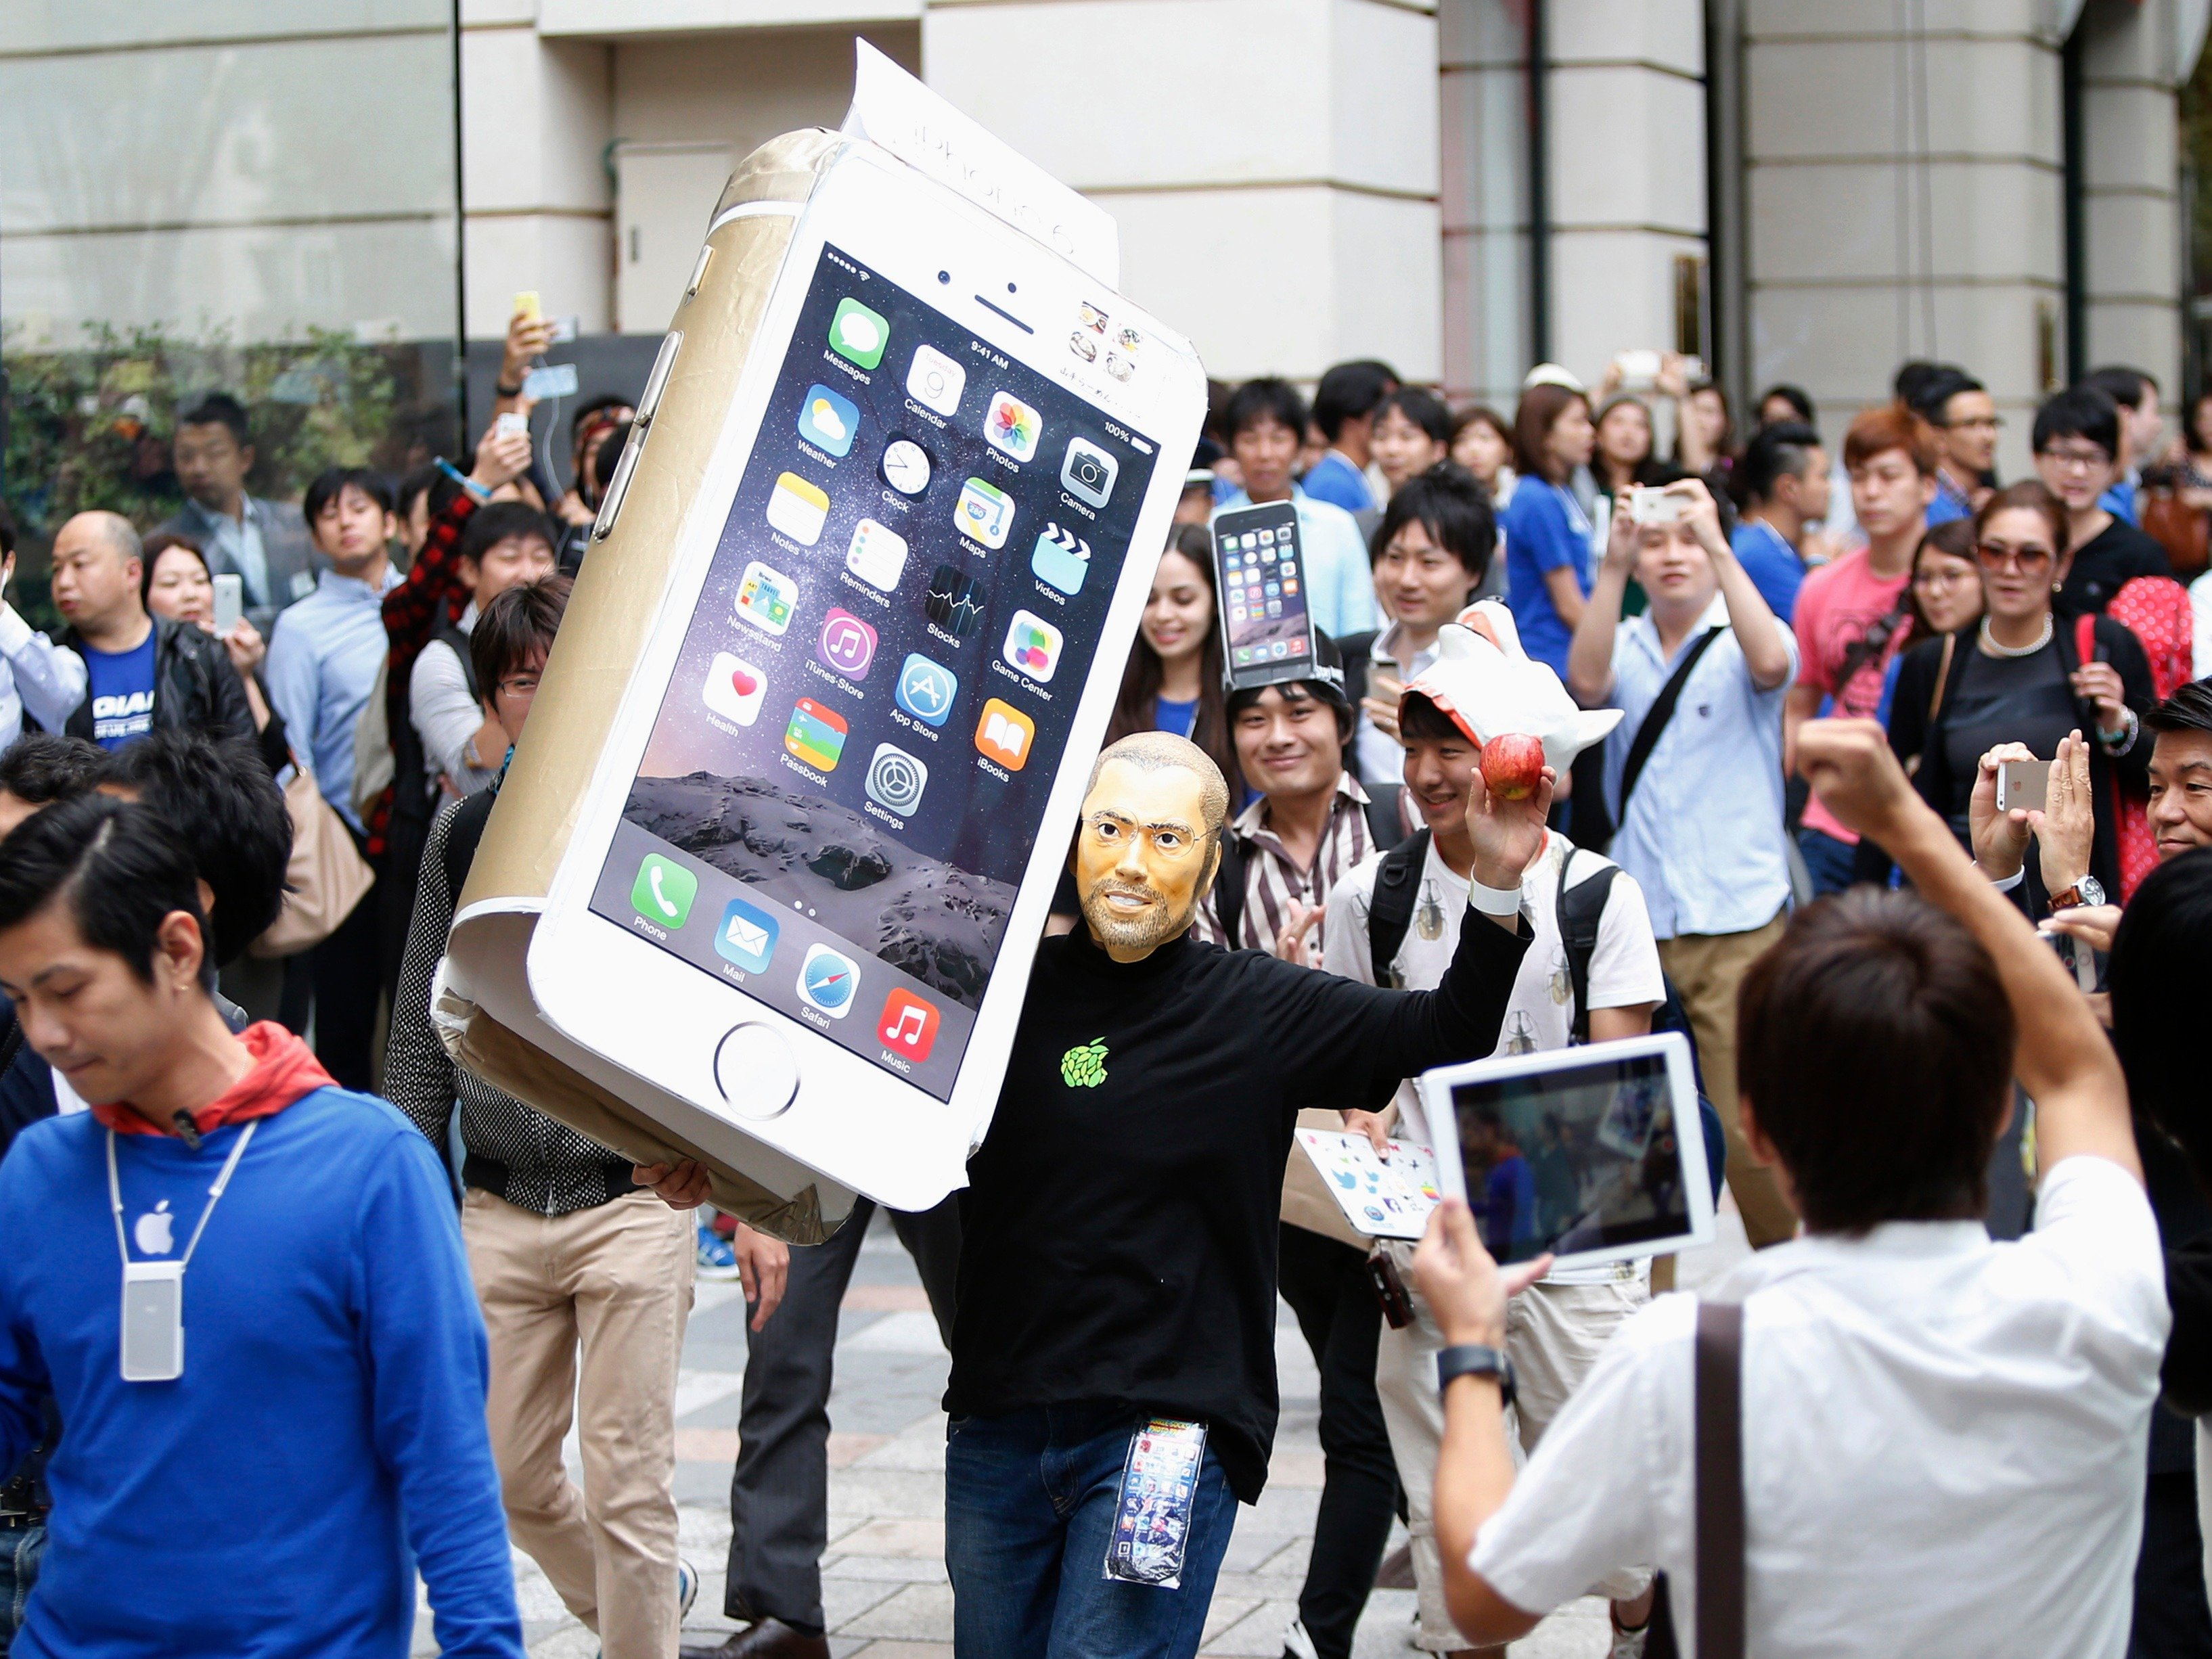 Long lines await the iPhone 6s and iPhone 6s Plus